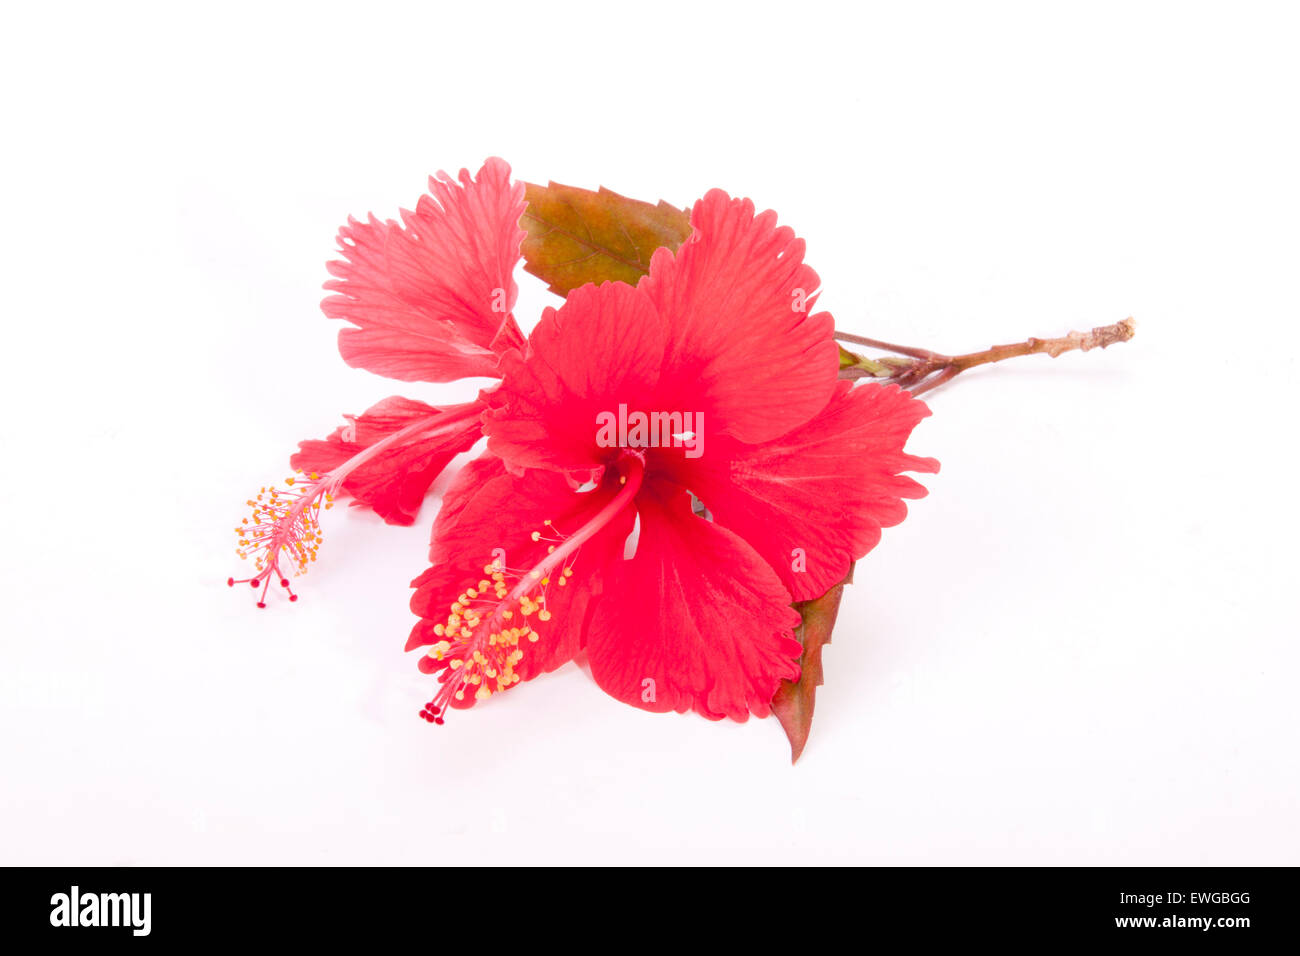 Red Hibiscus Flowers Stock Photos & Red Hibiscus Flowers Stock ...